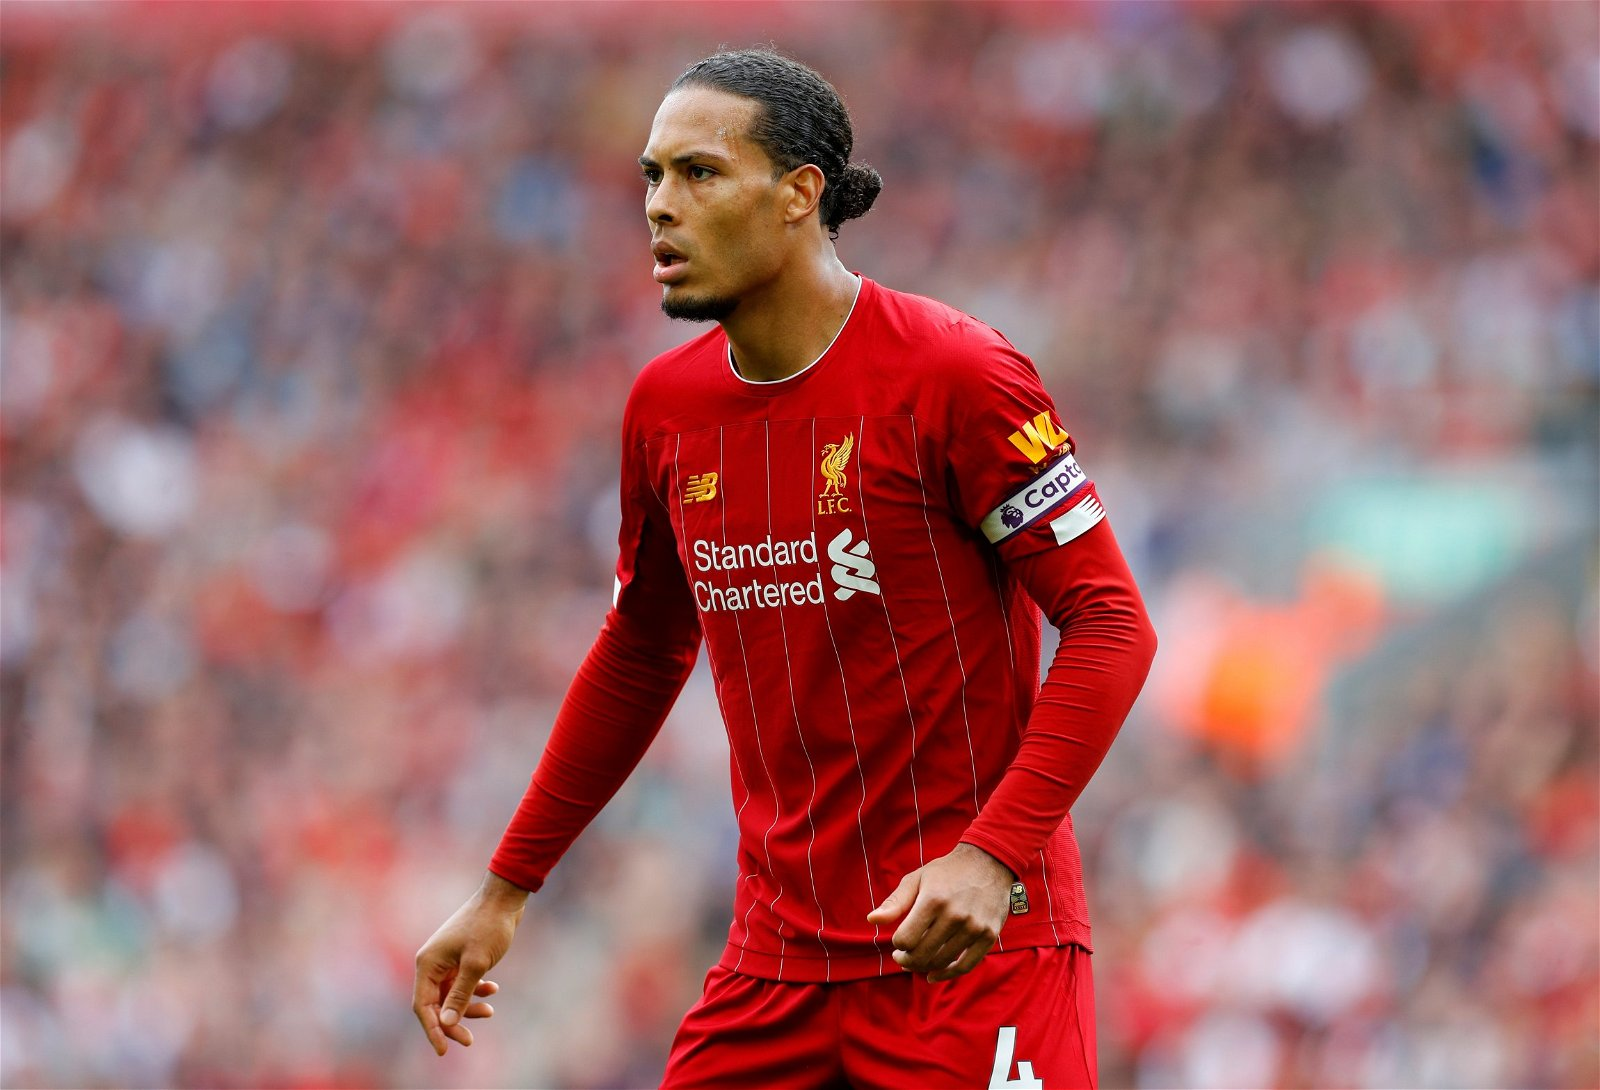 2019 09 14T124344Z 1879213853 RC111E33BB60 RTRMADP 3 SOCCER ENGLAND LIV NEW REPORT - Liverpool Roundup: Van Dijk not panicking, Contract talks for key man, potential Blues boost